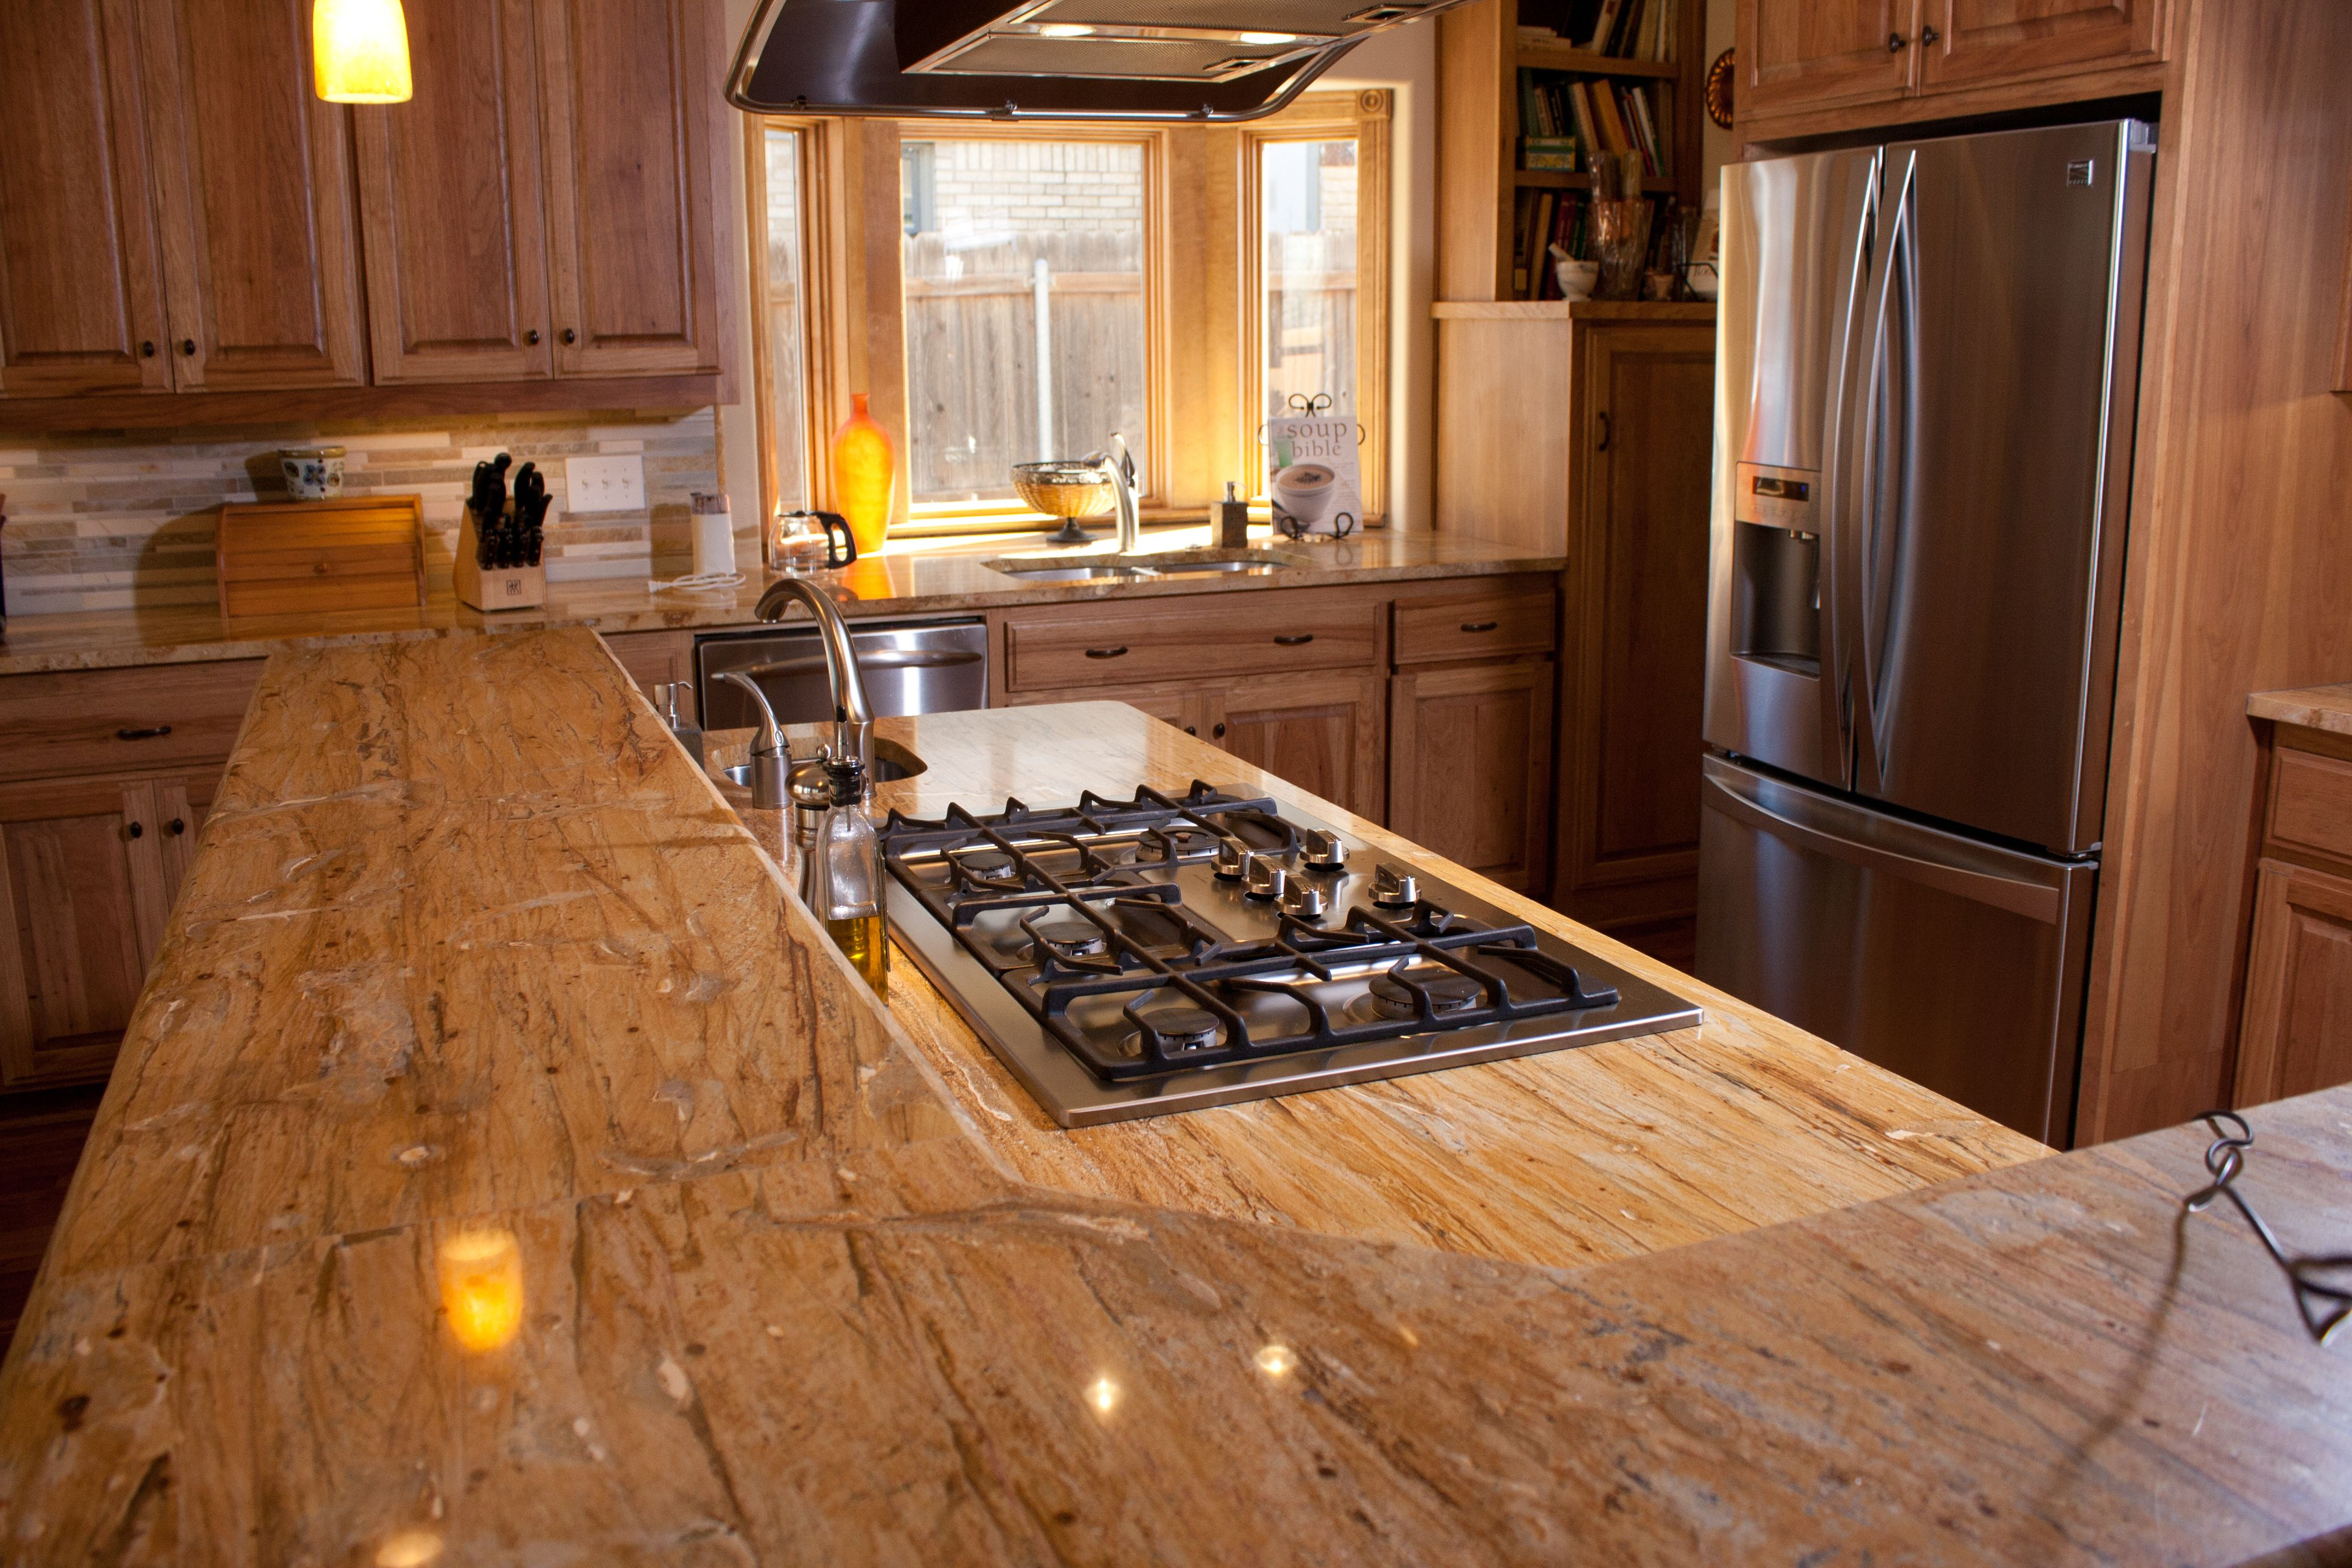 Countertops for kitchens dfw kitchen countertop new house idea